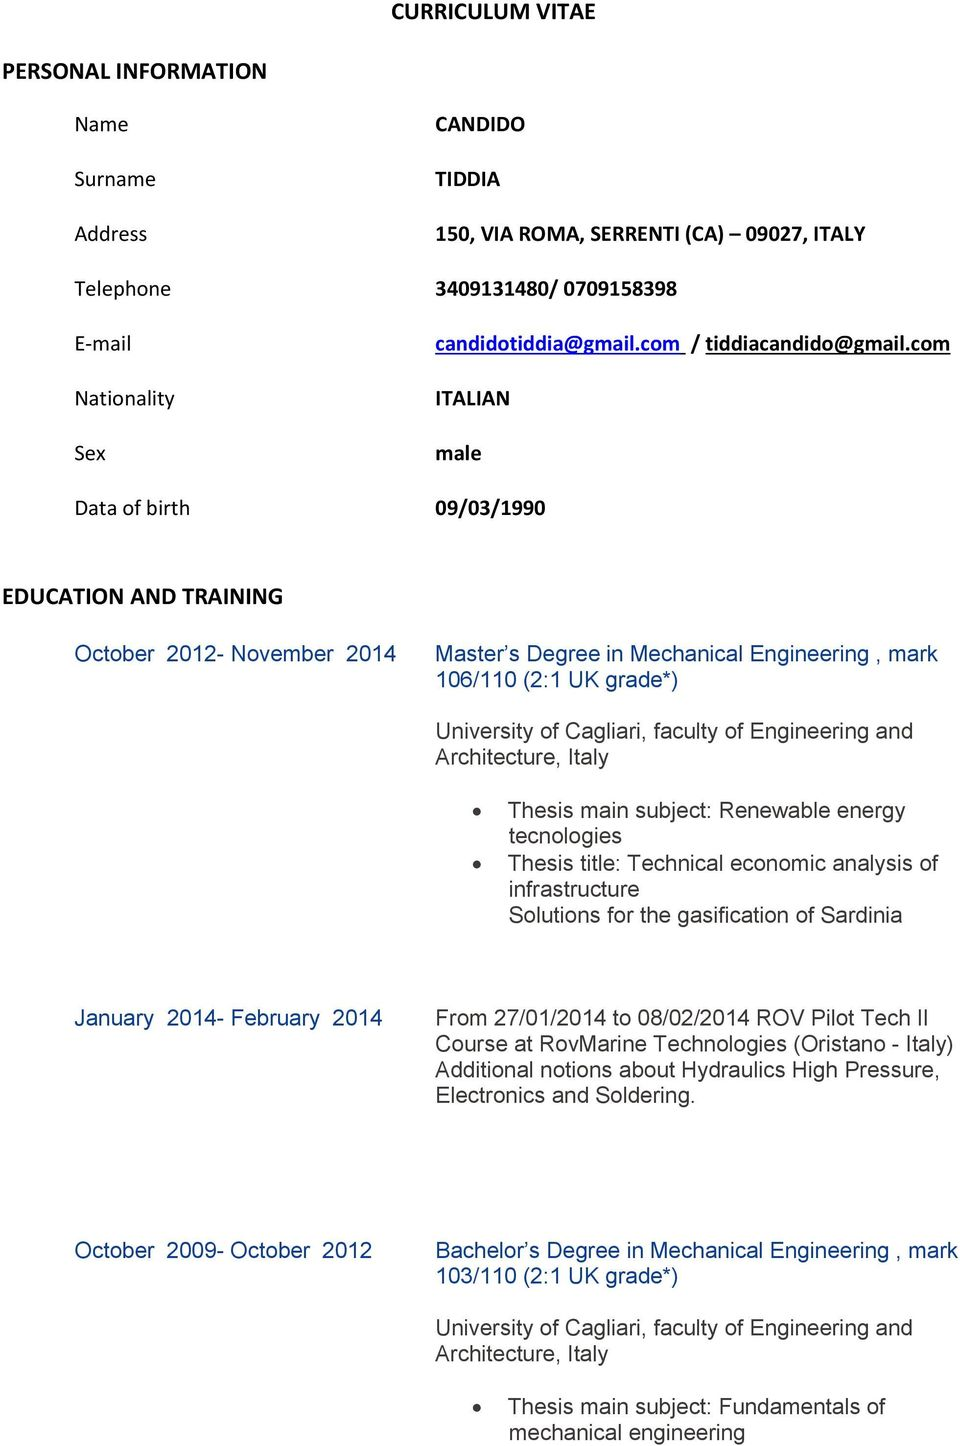 com ITALIAN male Data of birth 09/03/1990 EDUCATION AND TRAINING October 2012- November 2014 Master s Degree in Mechanical Engineering, mark 106/110 (2:1 UK grade*) University of Cagliari, faculty of